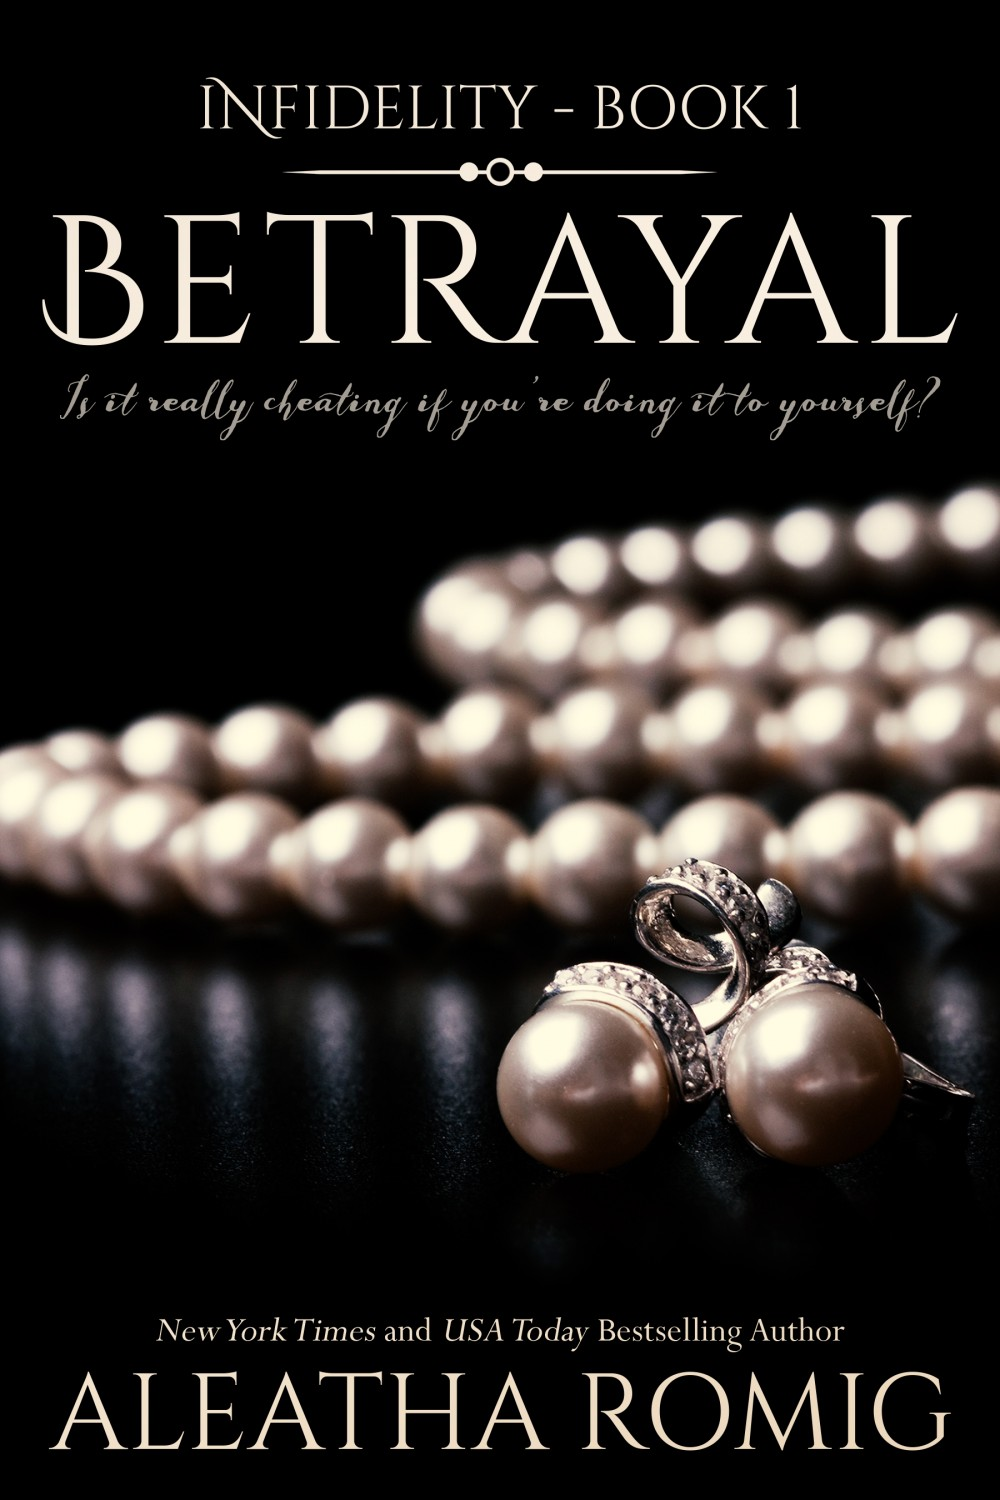 BK1 Betrayal E-Book Cover